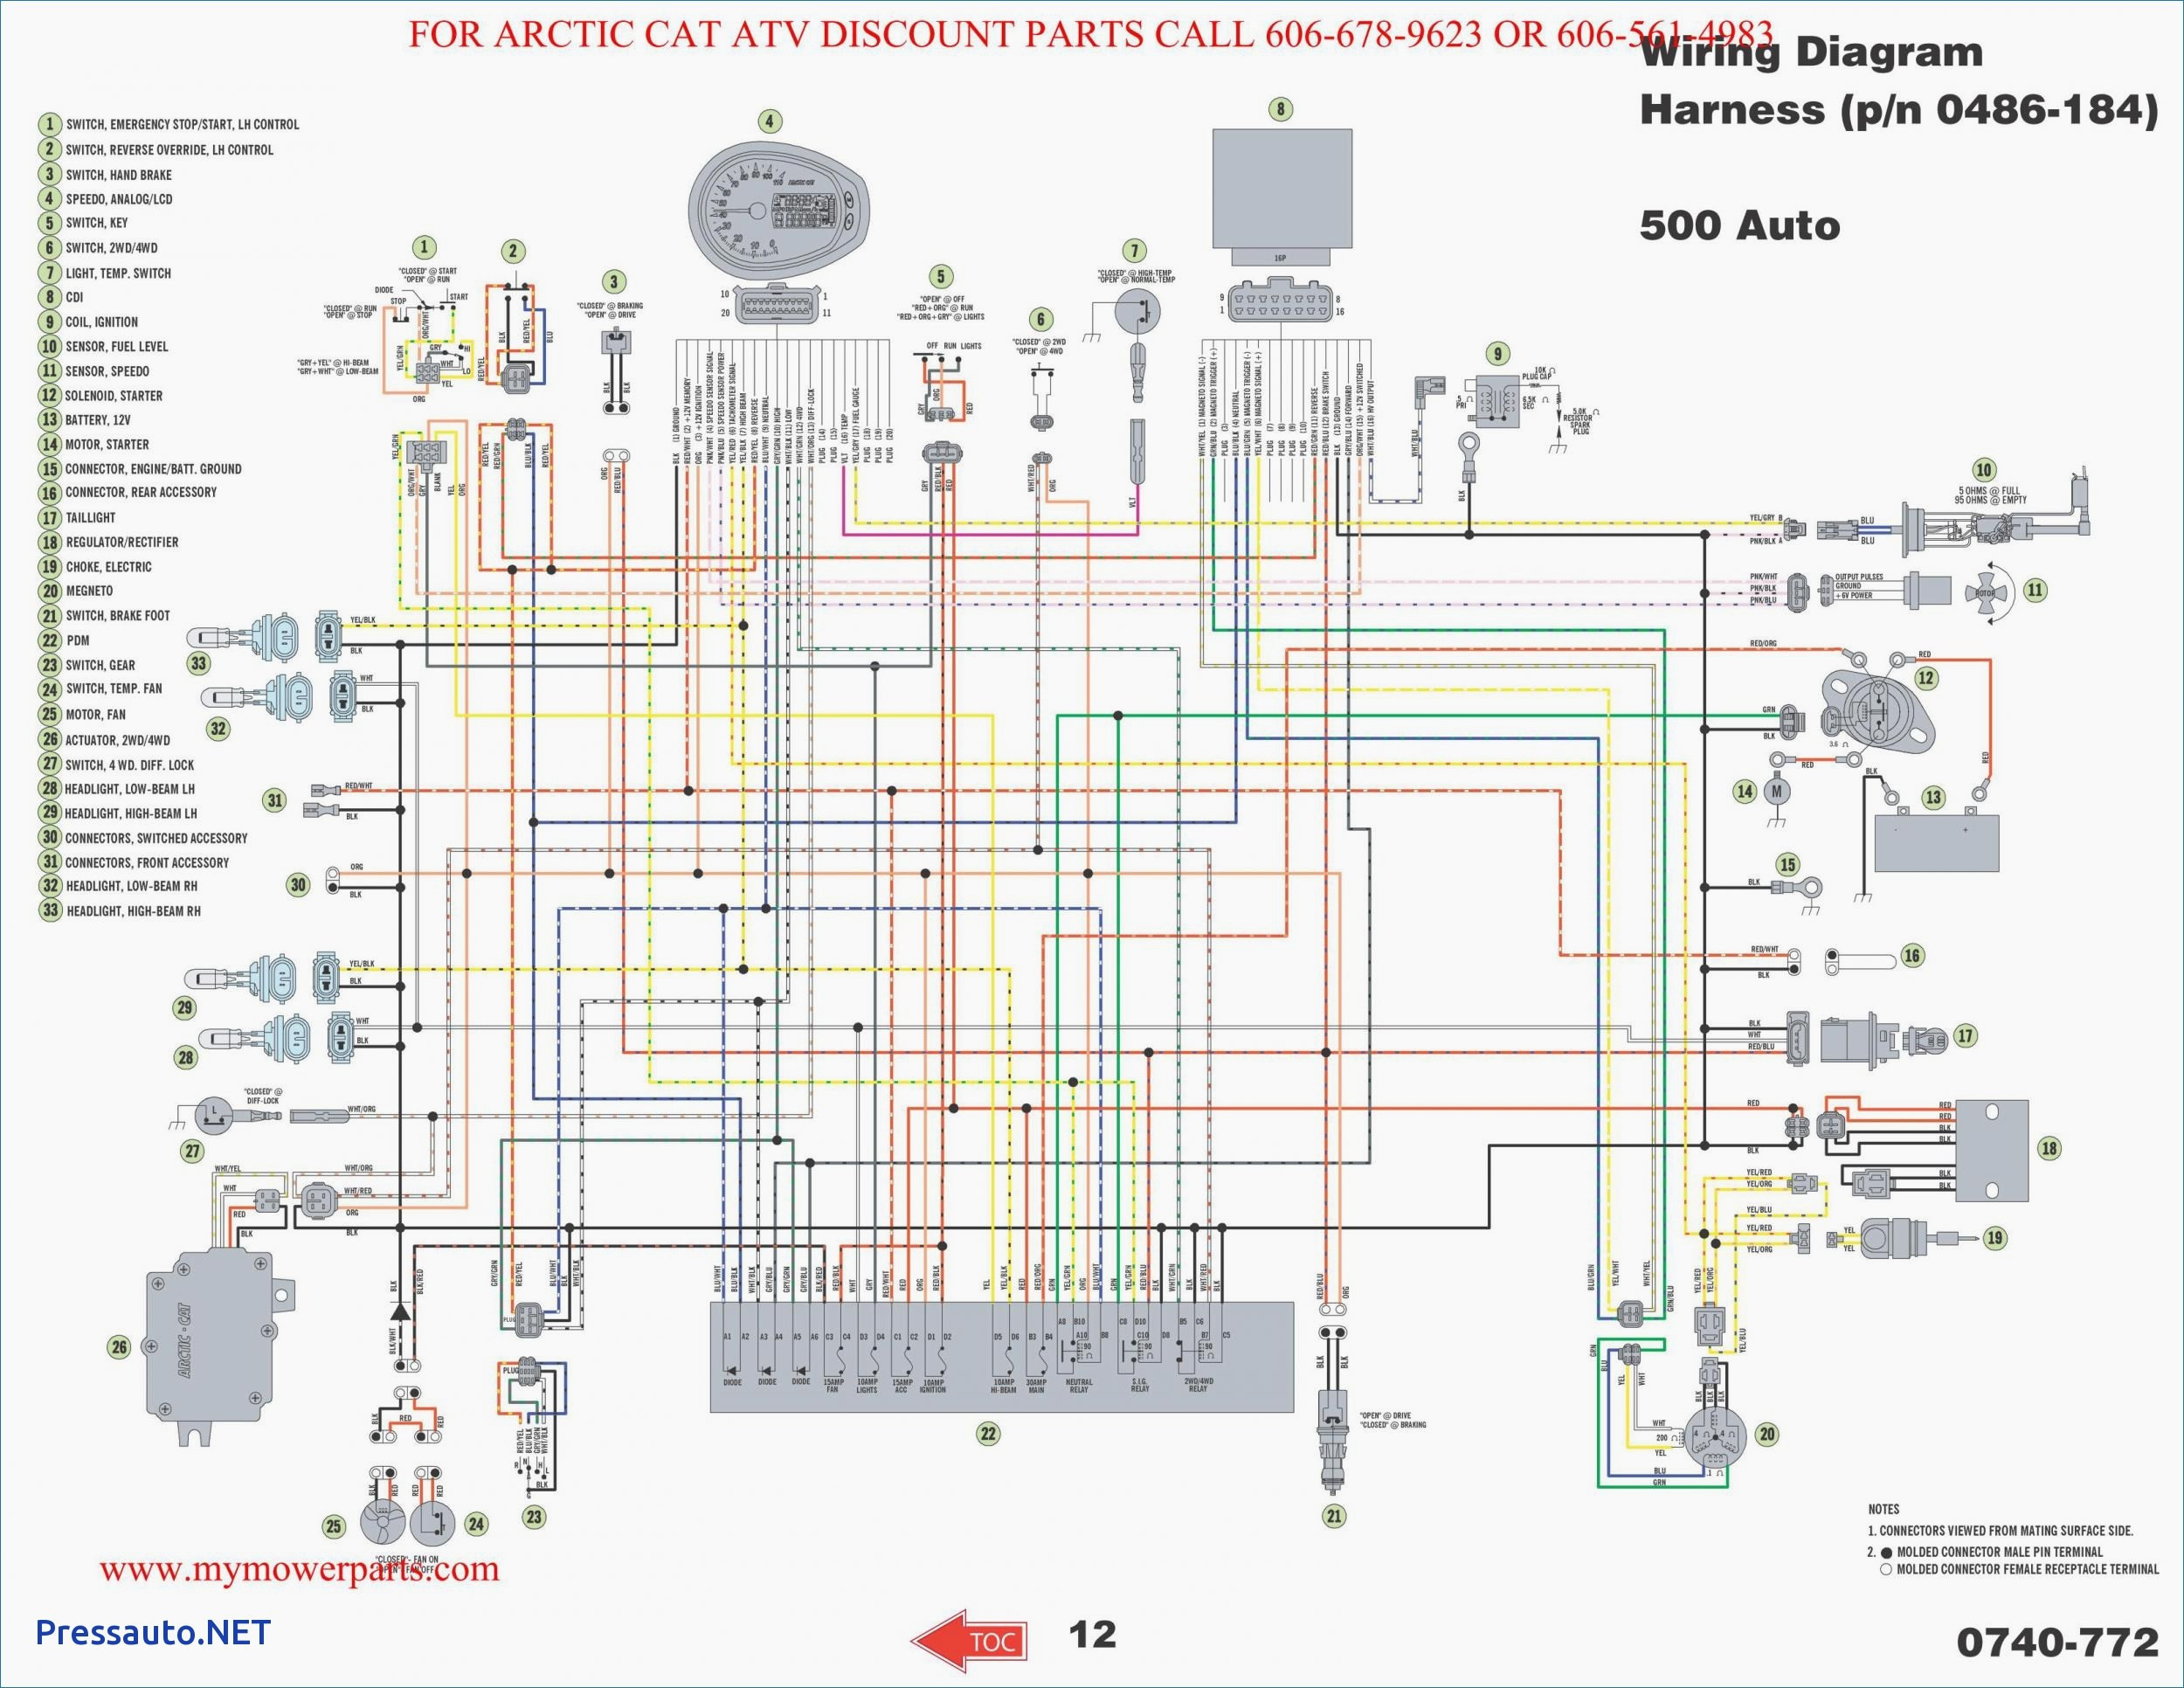 olympian generator wiring diagram 4001e Download-Wiring Diagram For Olympian Generator Inspirationa Olympian 6-h